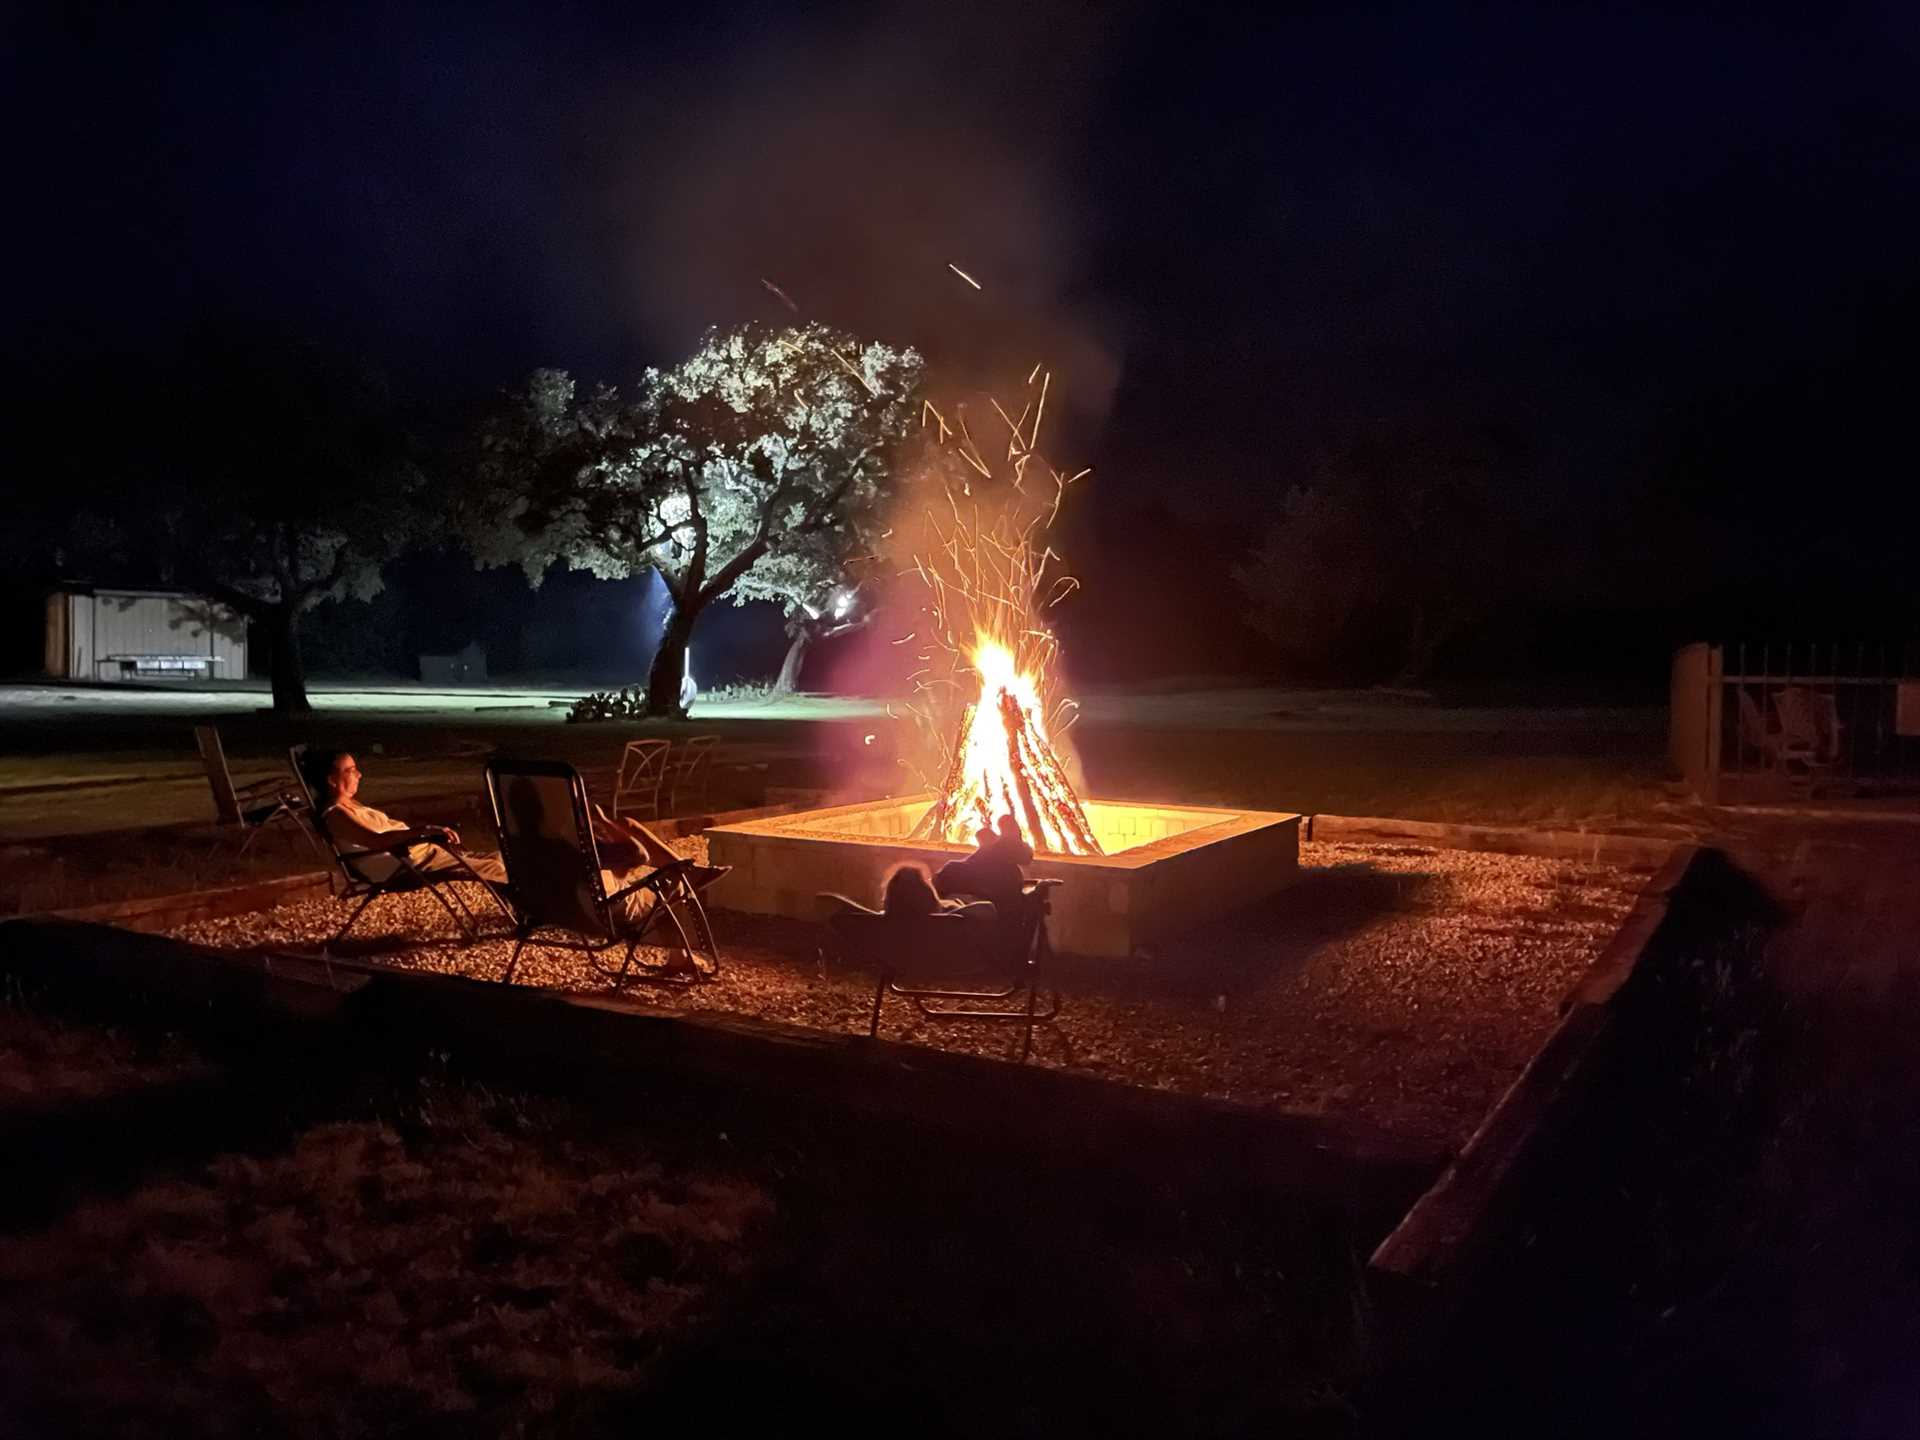 Enjoy snacks and friendly conversation around the fire pit! This location is also incredible for wildlife watching and stargazing.